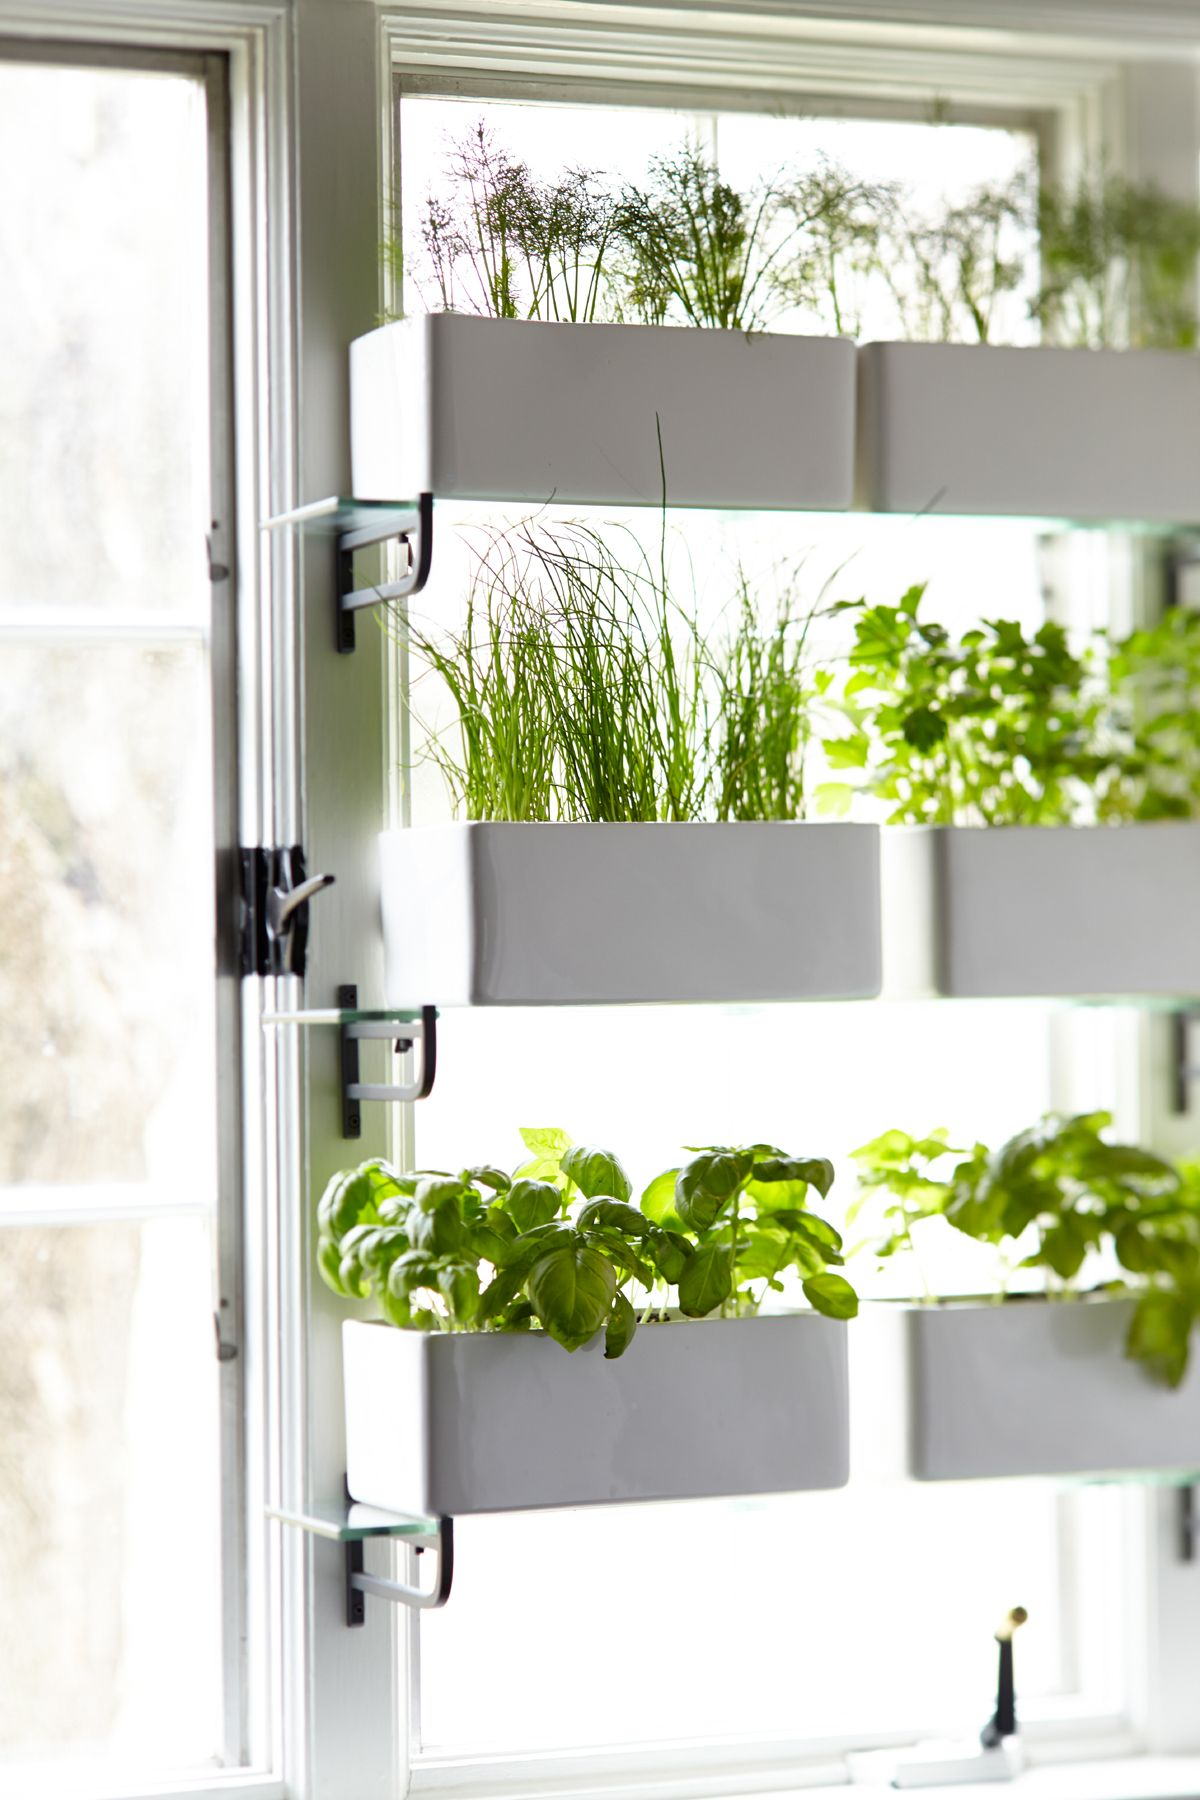 greenhouse kitchen window cabinets chicago privacy garden using ikea glass shelves